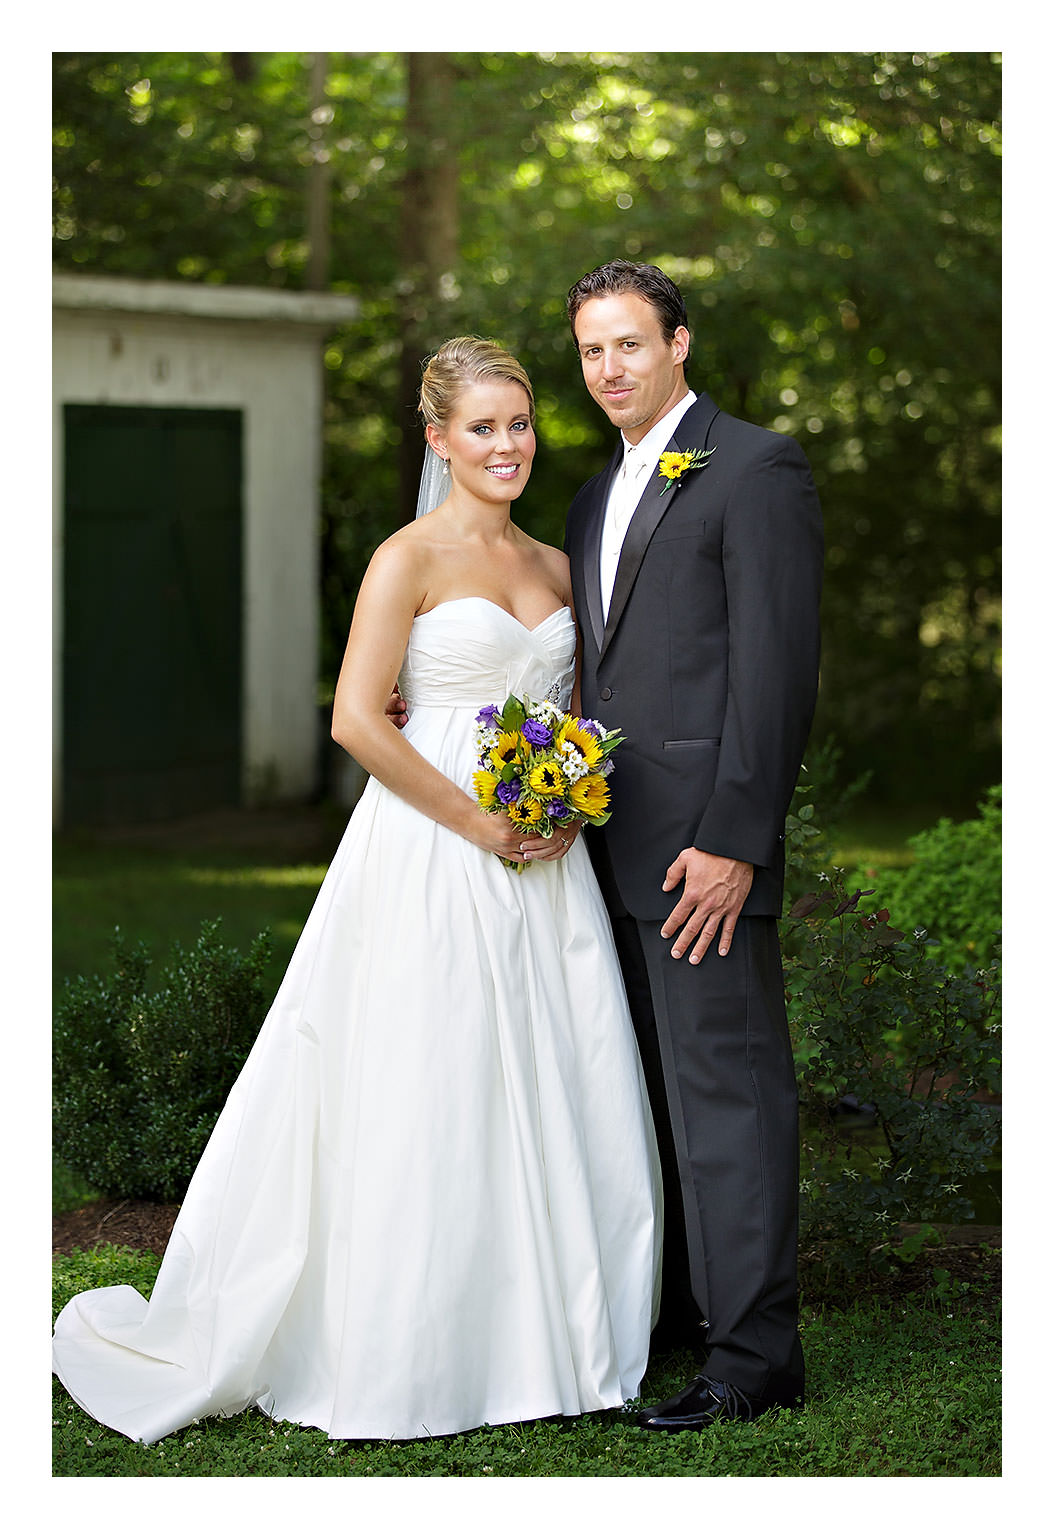 jasmine plantation wedding photographers | richmond wedding photographers - jasmine plantation wedding photographers | richmond wedding photographers